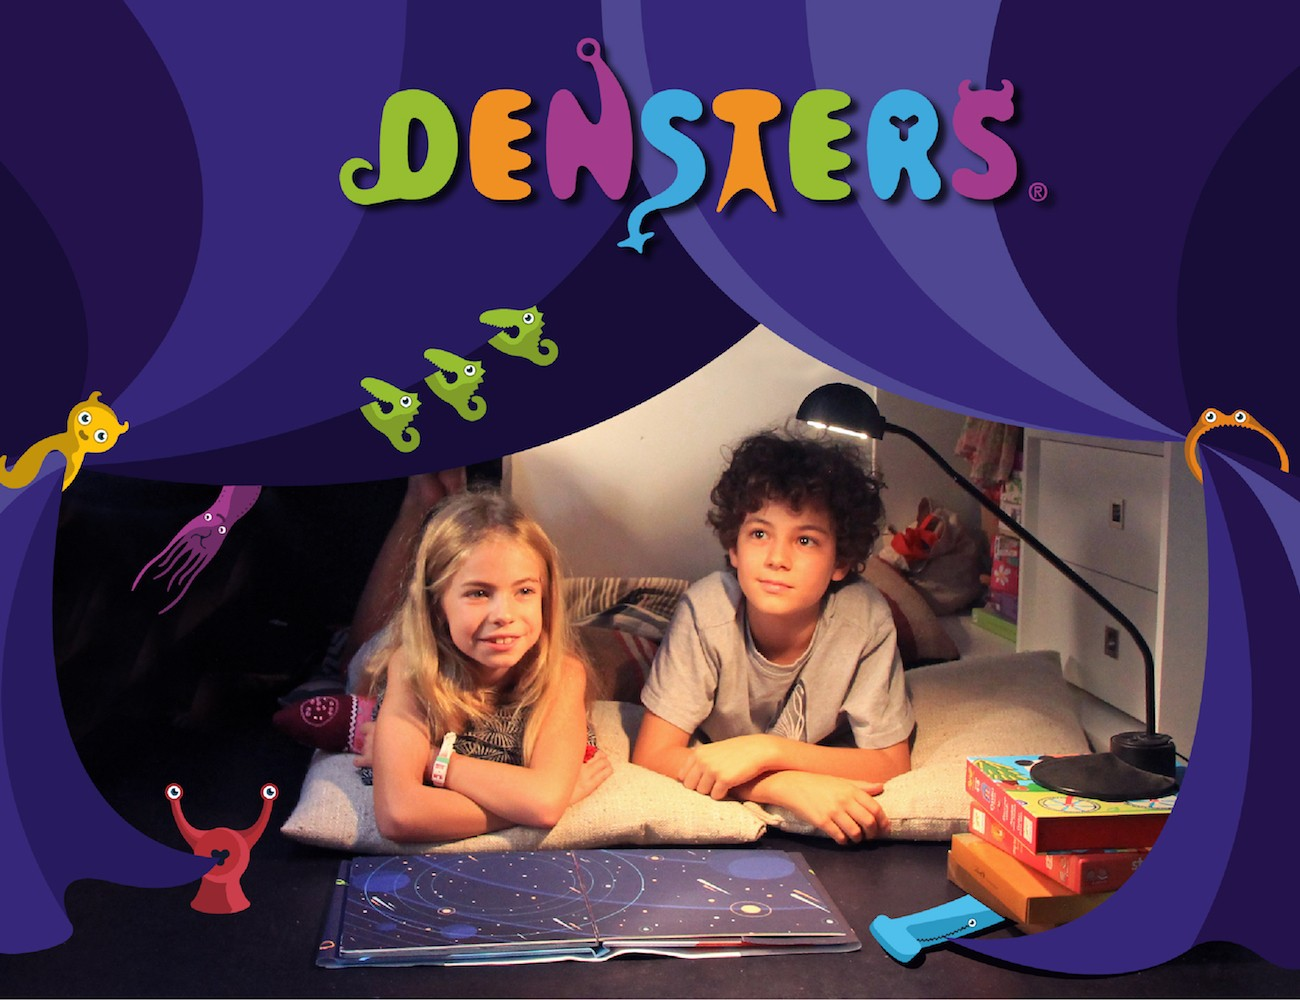 DENSTERS! Toy Monsters That Build Blanket Forts & Dens!